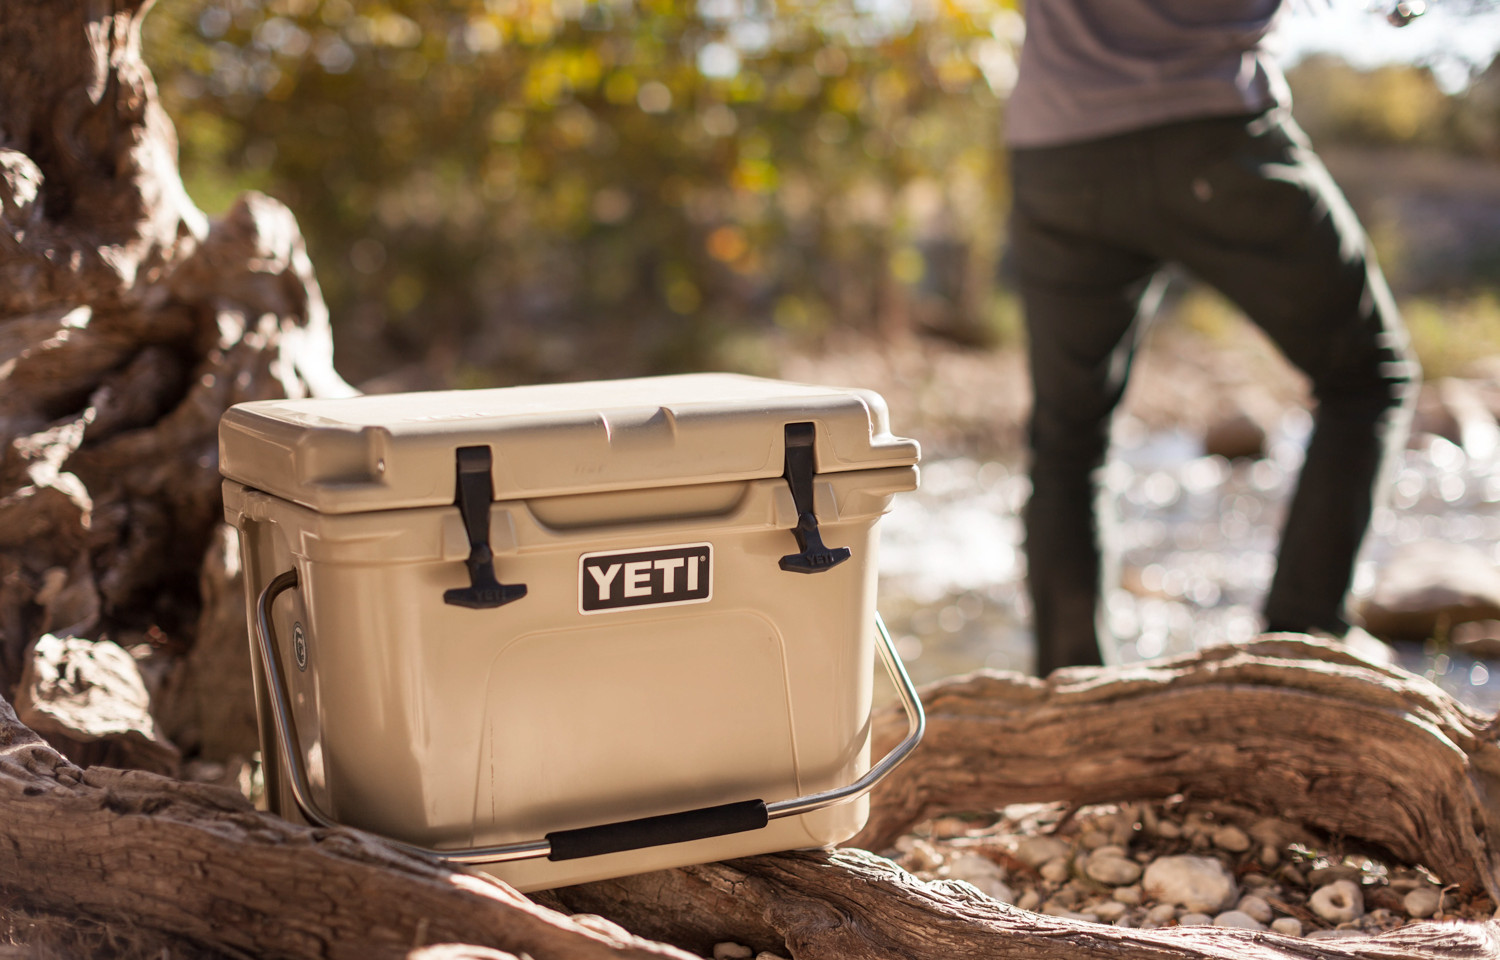 Yeti Coolers, Texas Hill Country.jpg